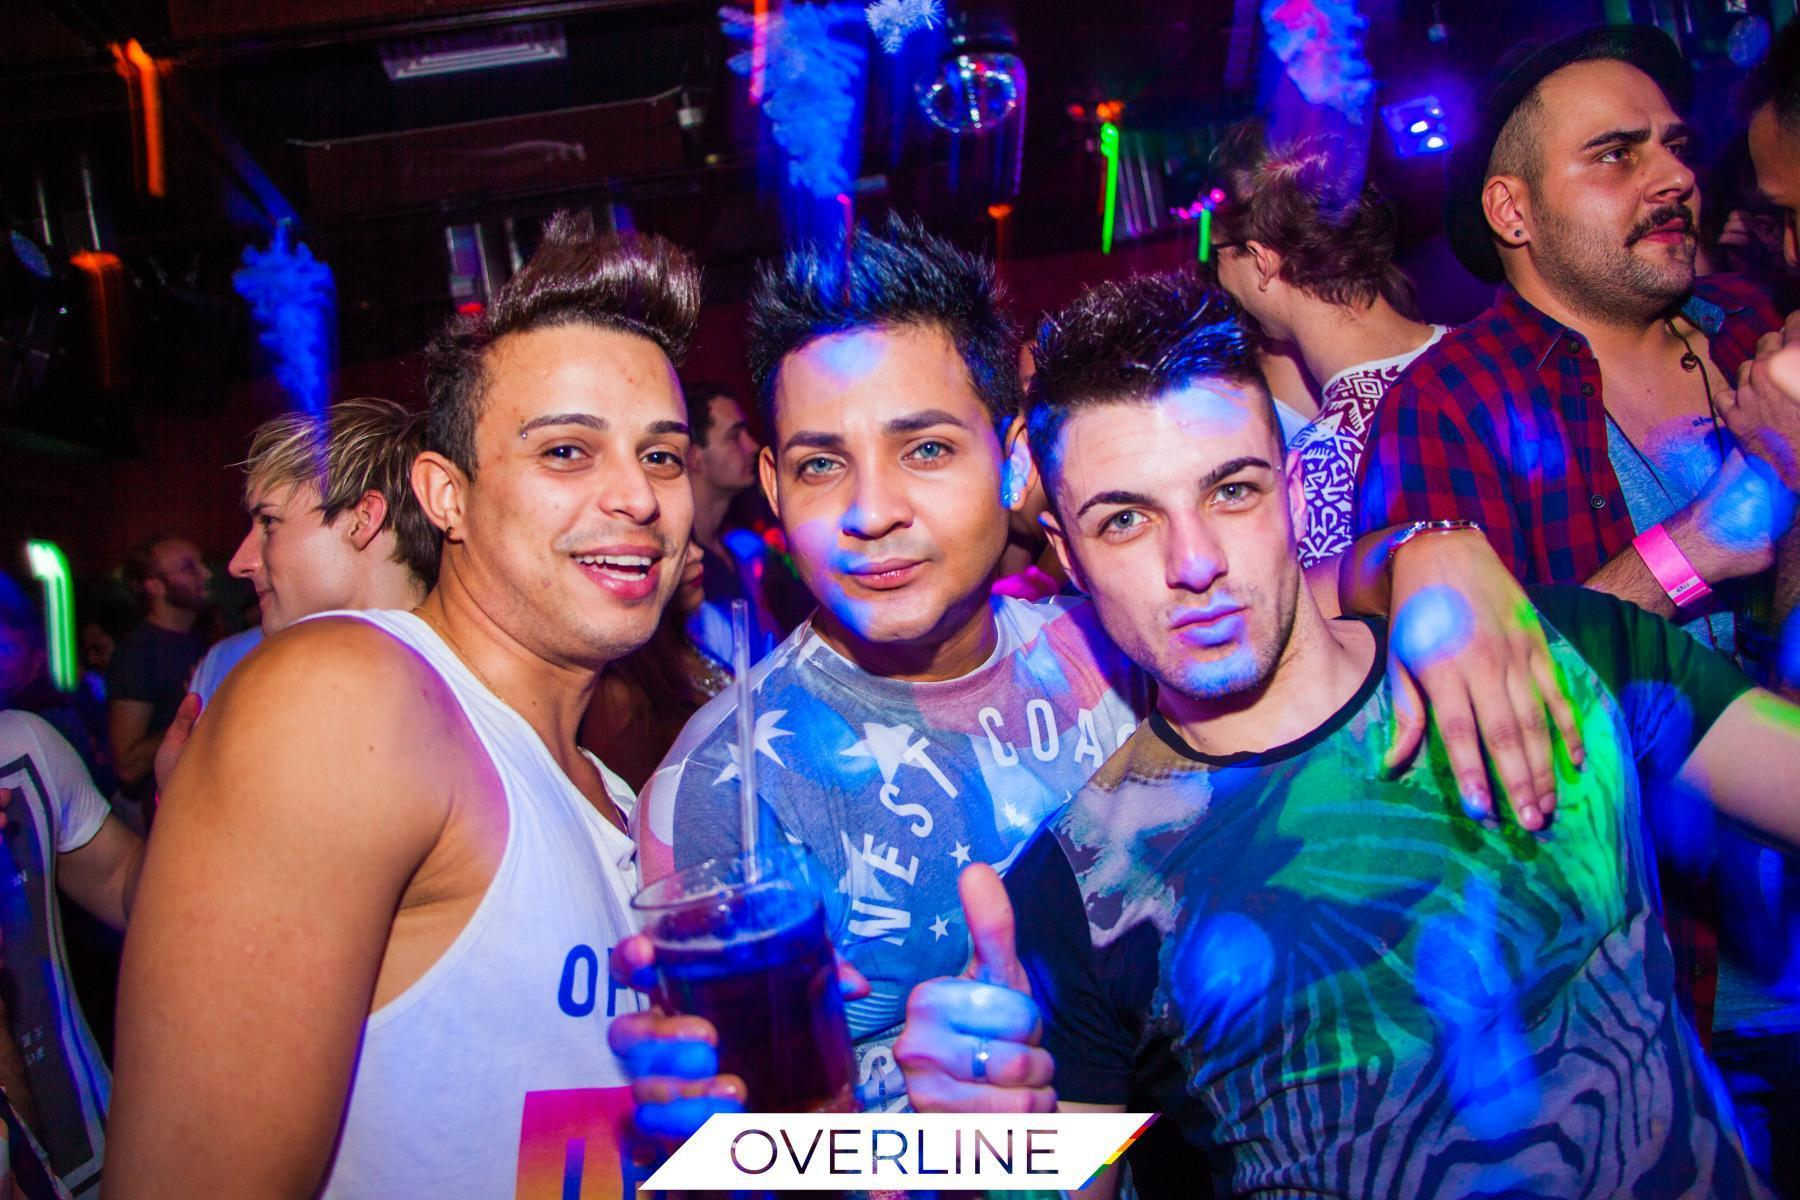 Colorful 20.12.2014